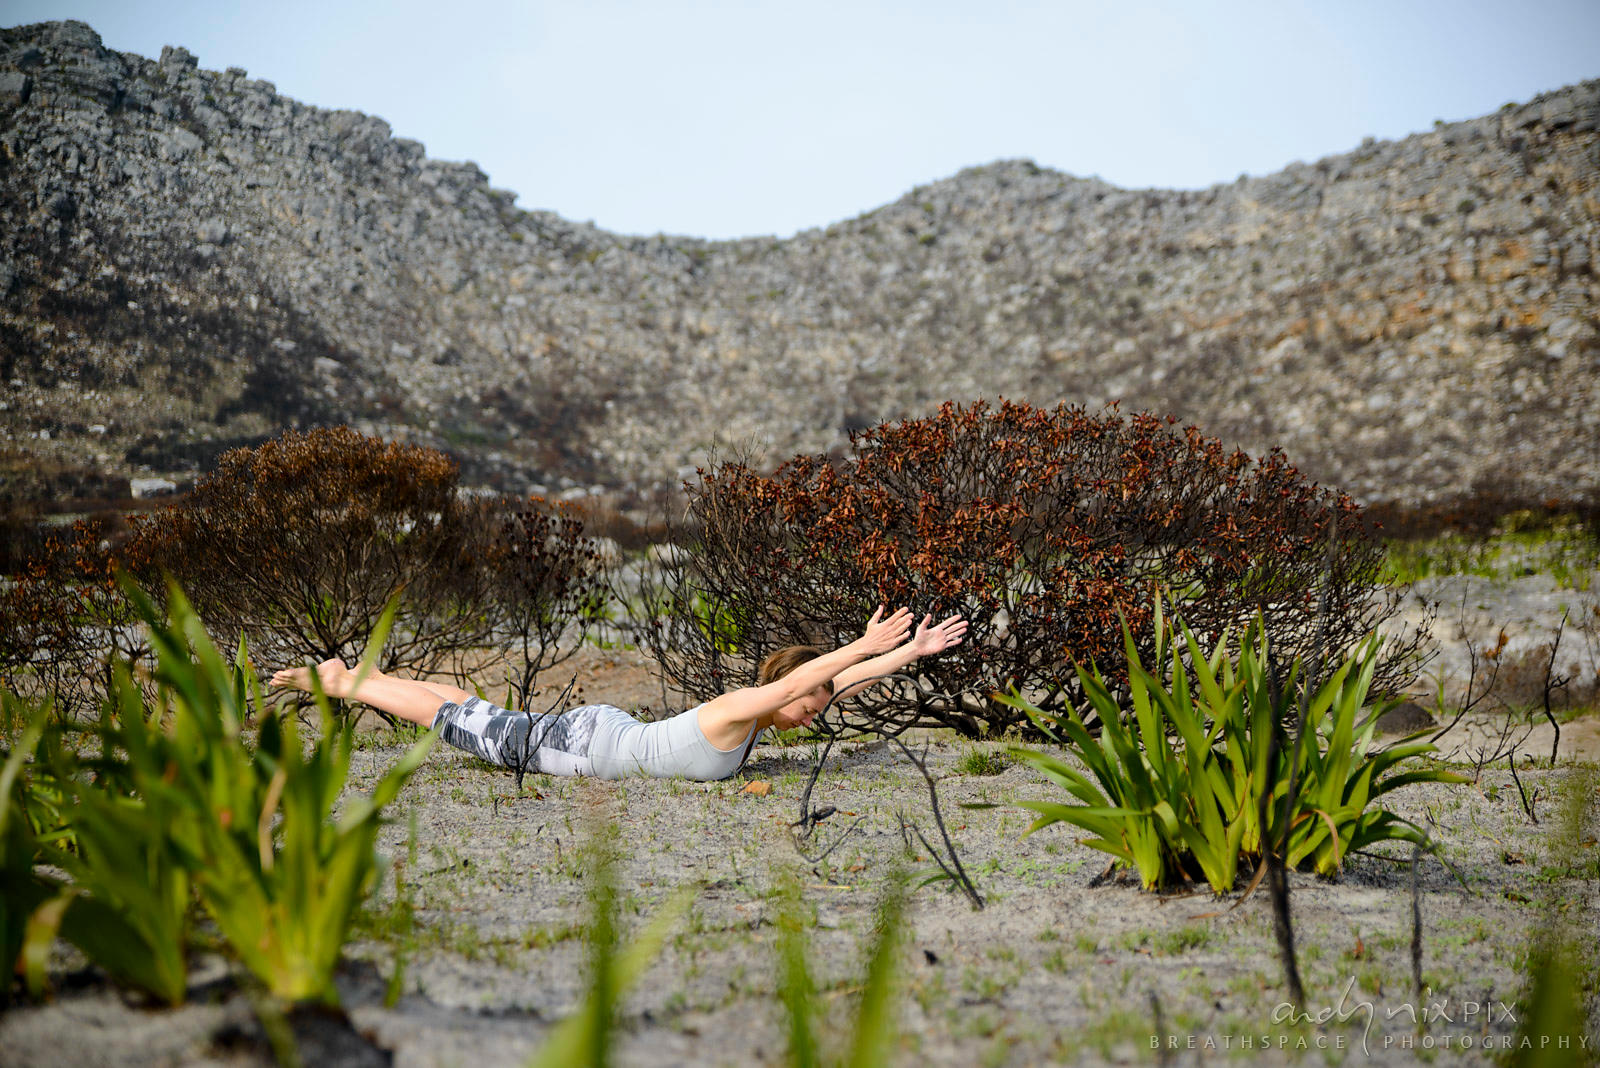 Woman doing yoga in fynbos regenerating after fire